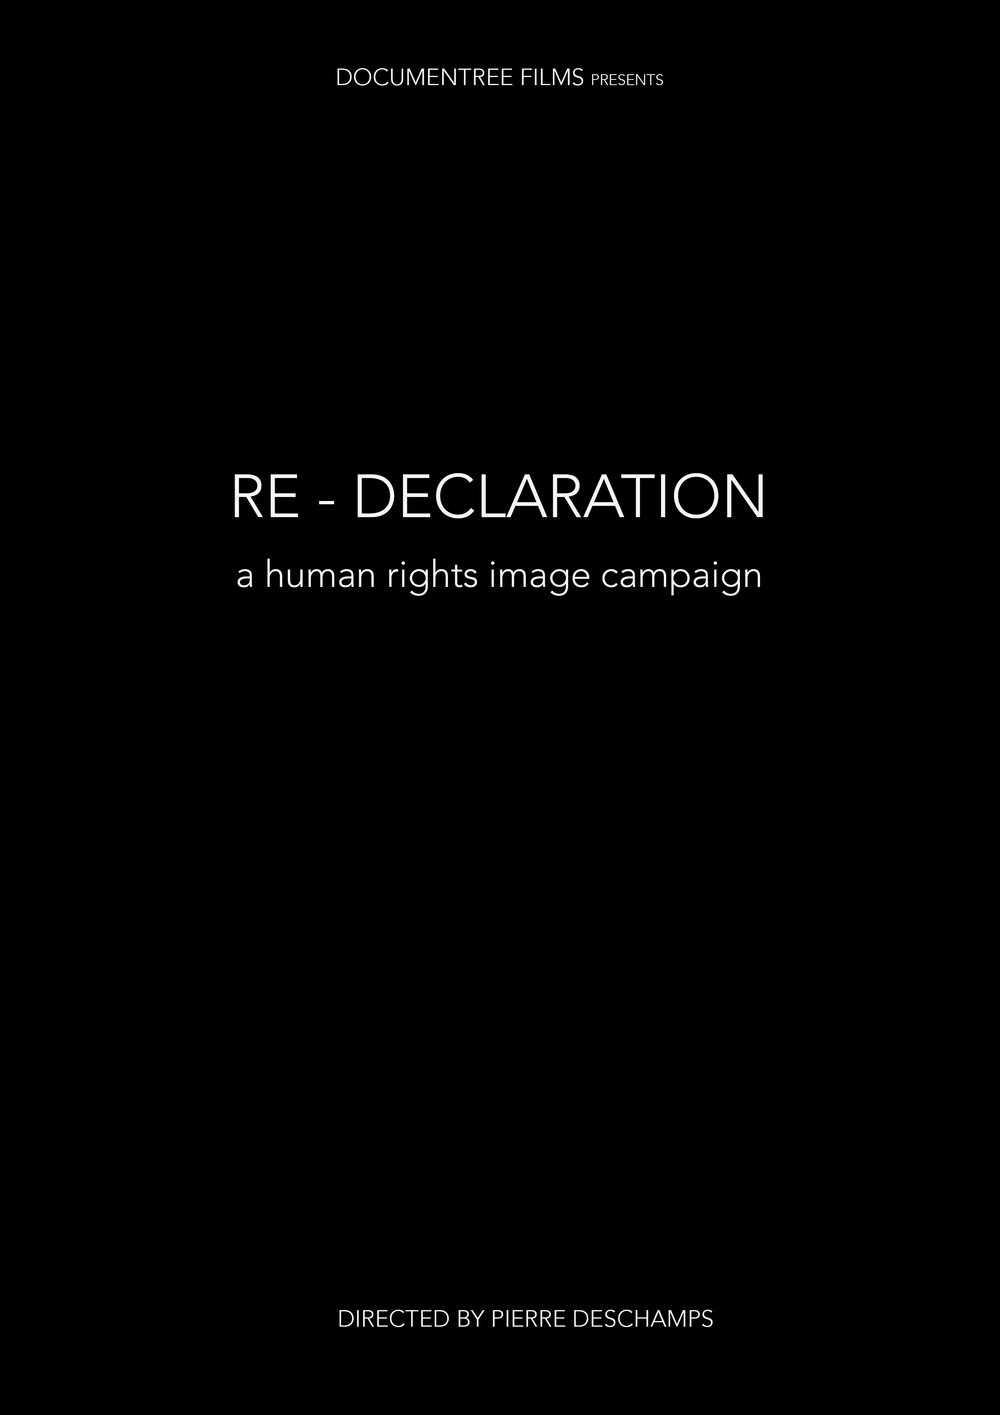 RE DECLARATION - HUMAN RIGHTS CAMPAIGN